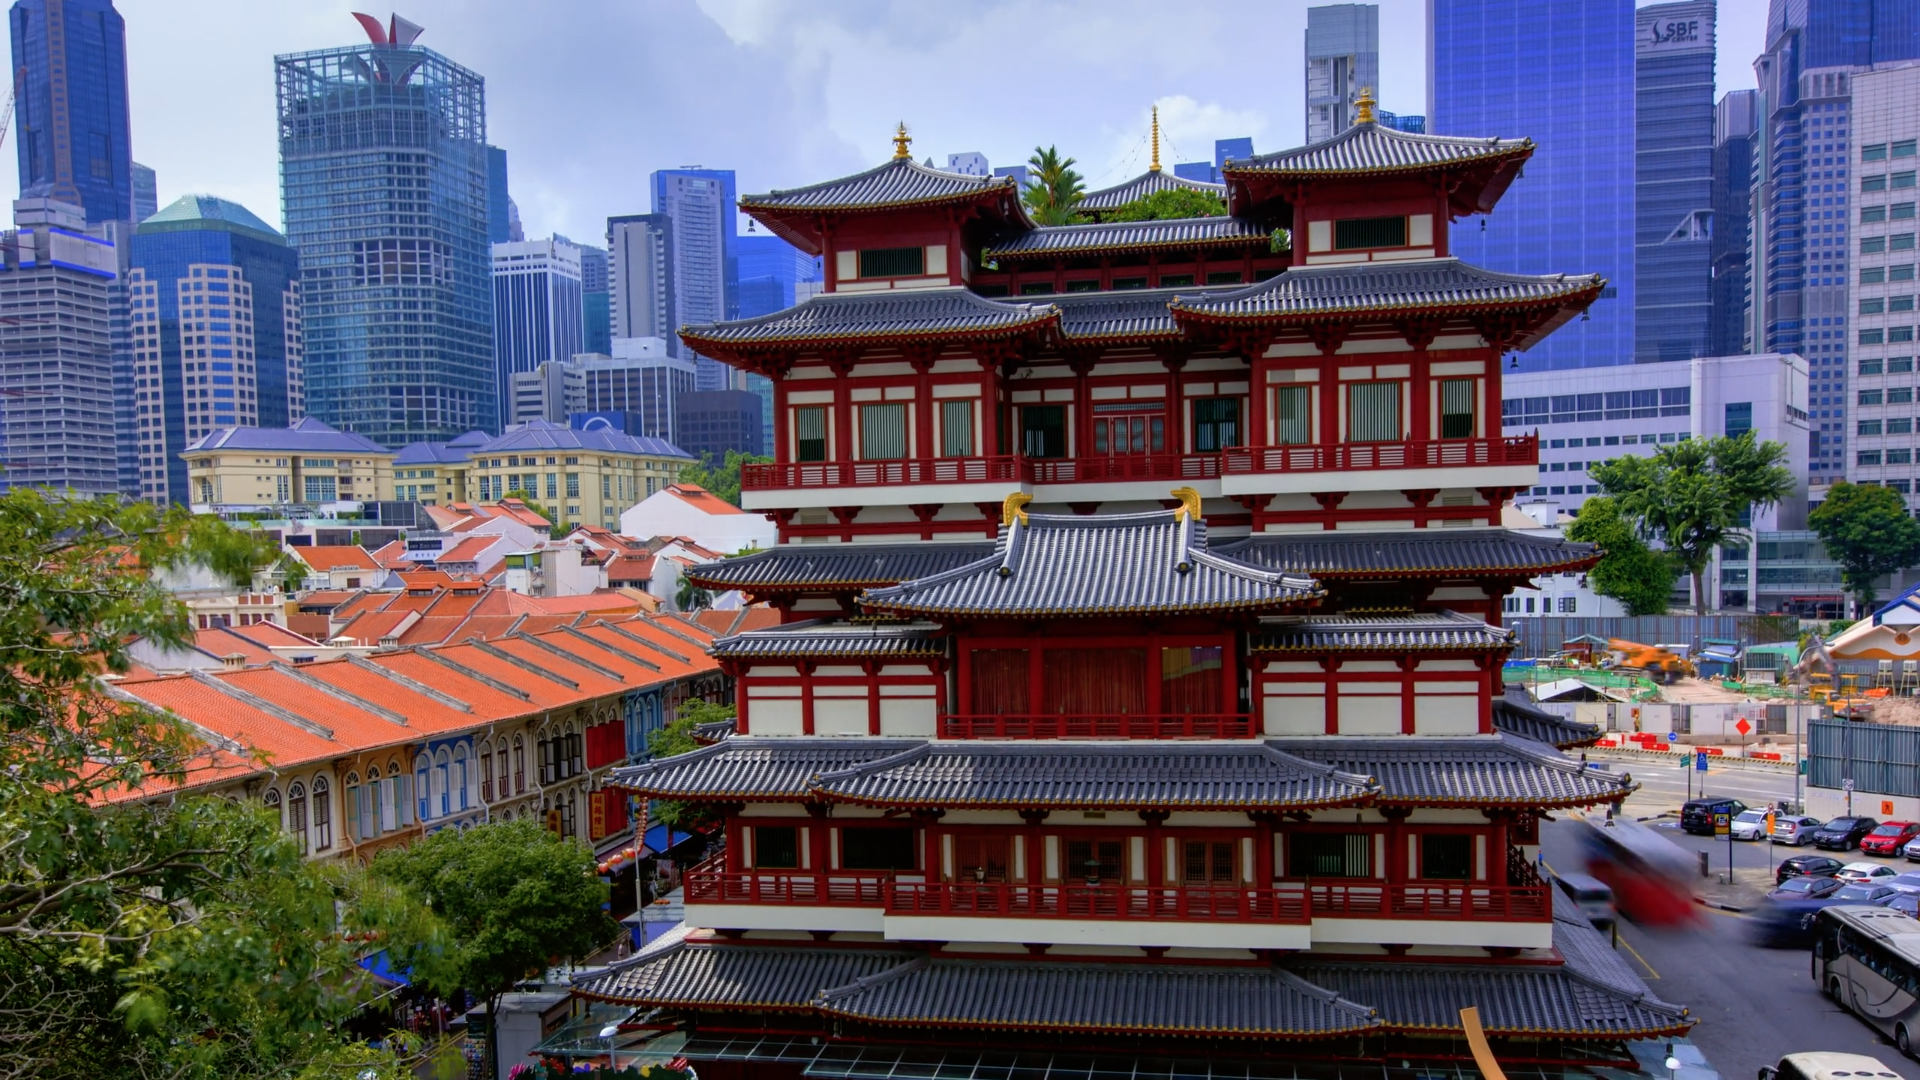 Say Hello to Singapore in this eye-popping flow-motion travel film